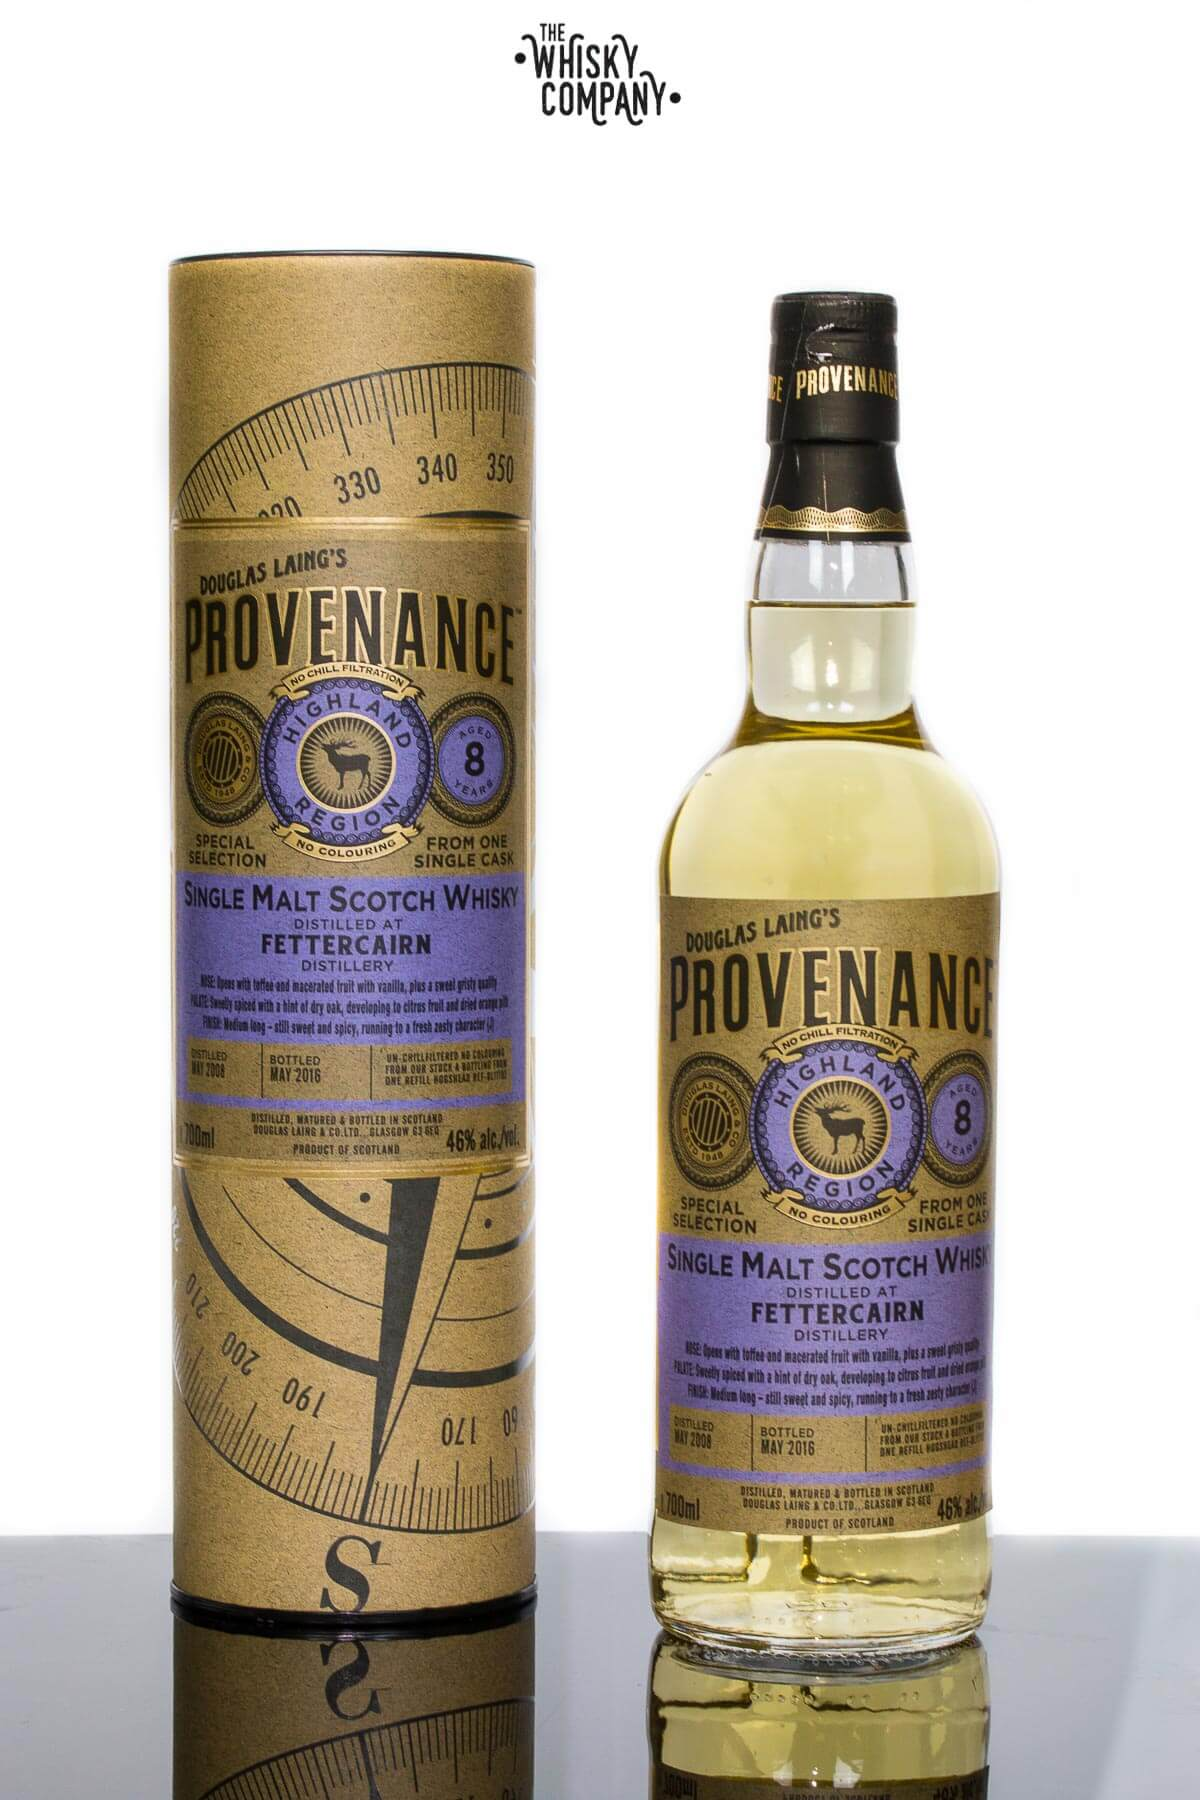 Douglas Laing Provenance Fettercairn Aged 8 Years Single Cask Single Malt Scotch Whisky